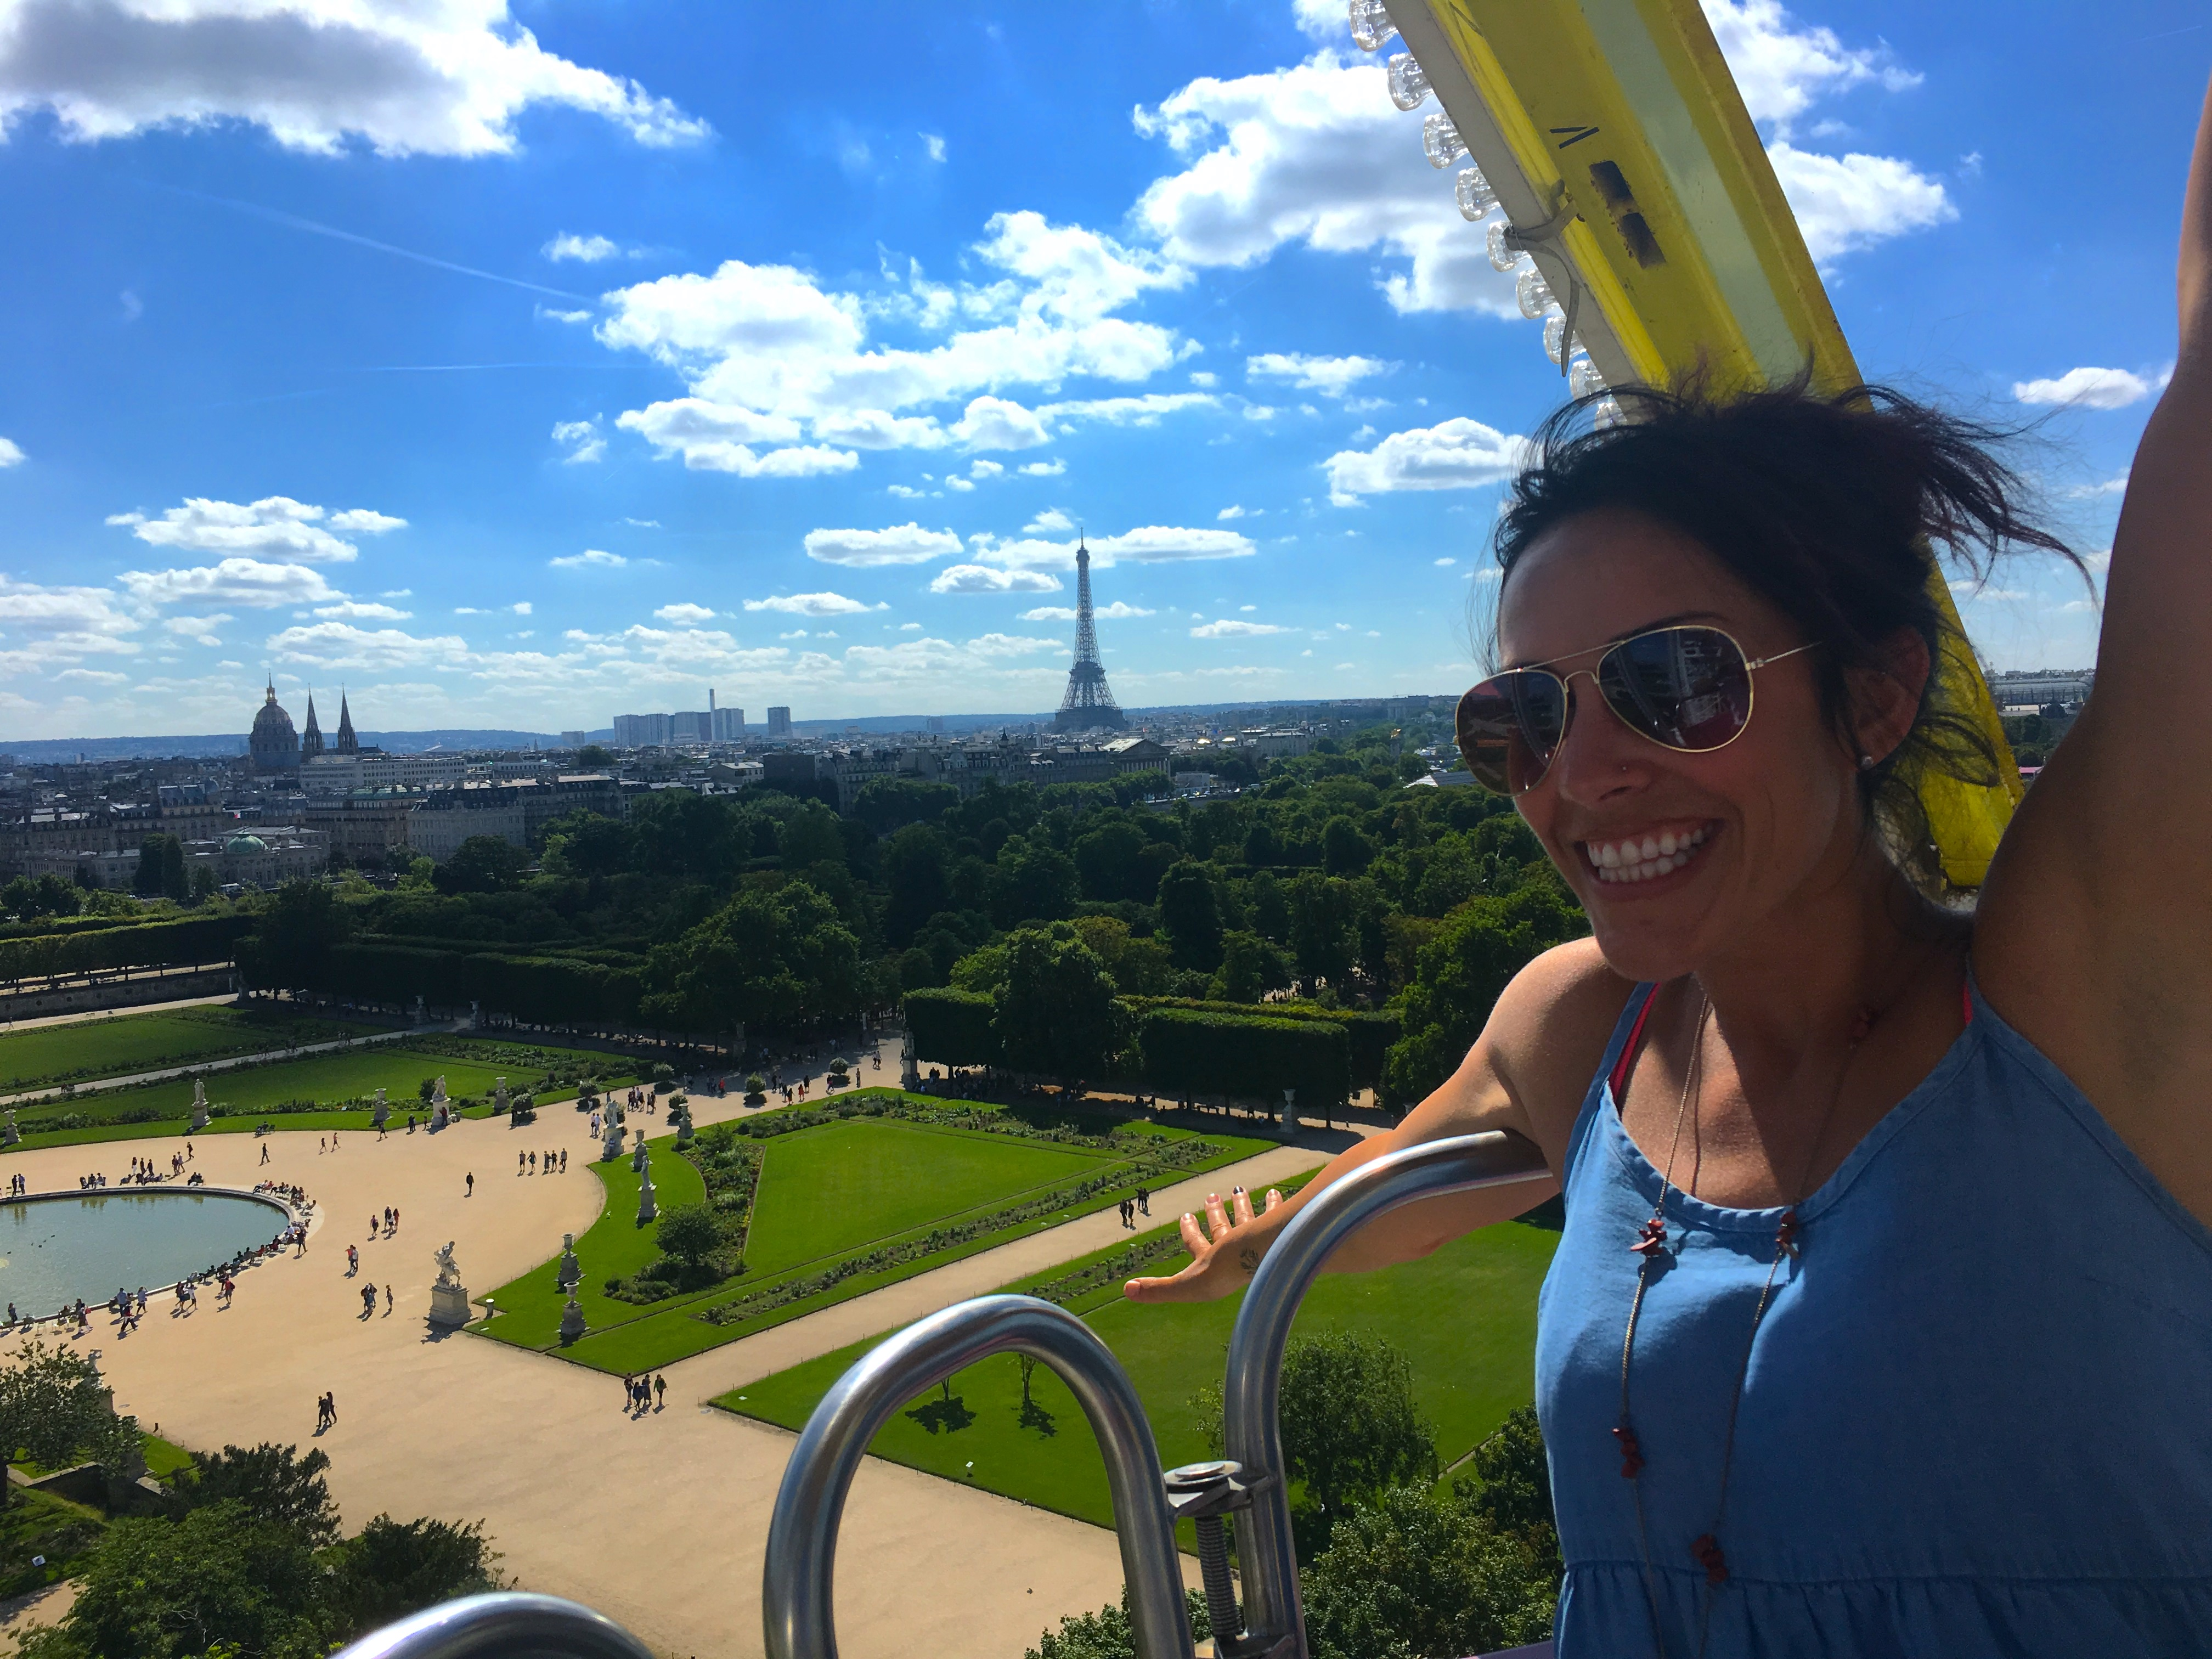 Ride the Ferris Wheel in Paris for amazing view of the city!